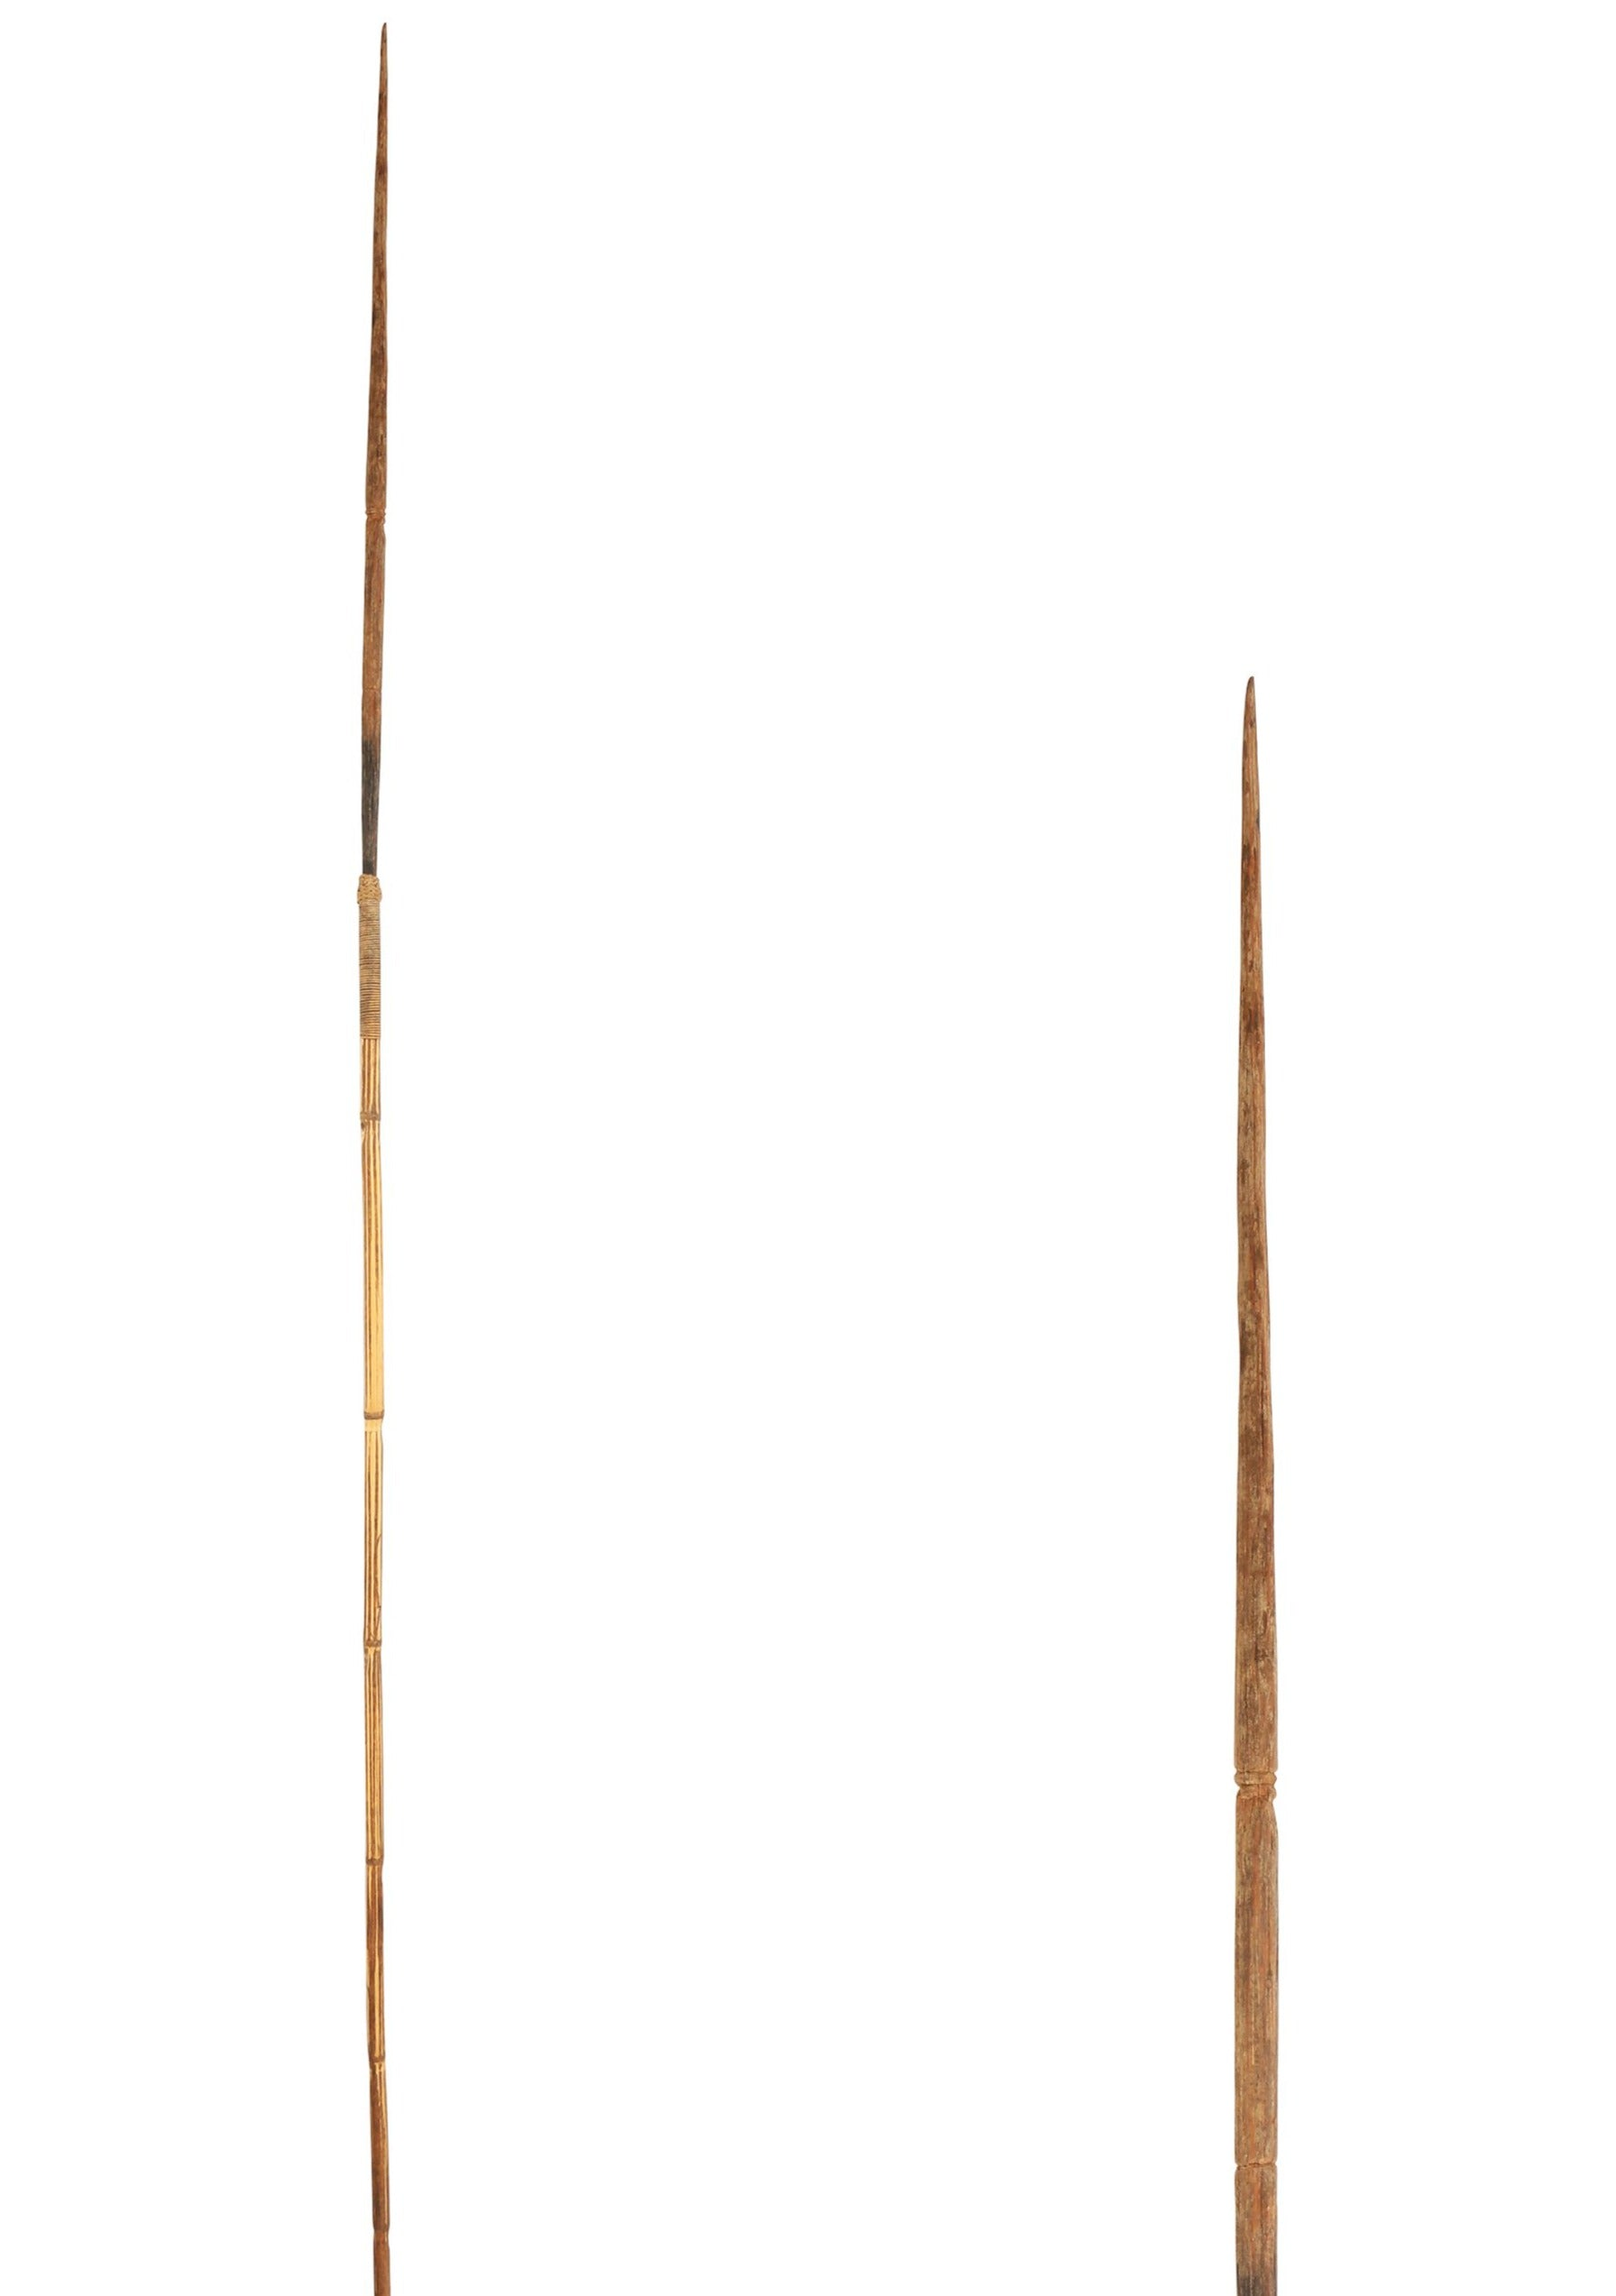 SOLOMON ISLANDS WAR SPEAR